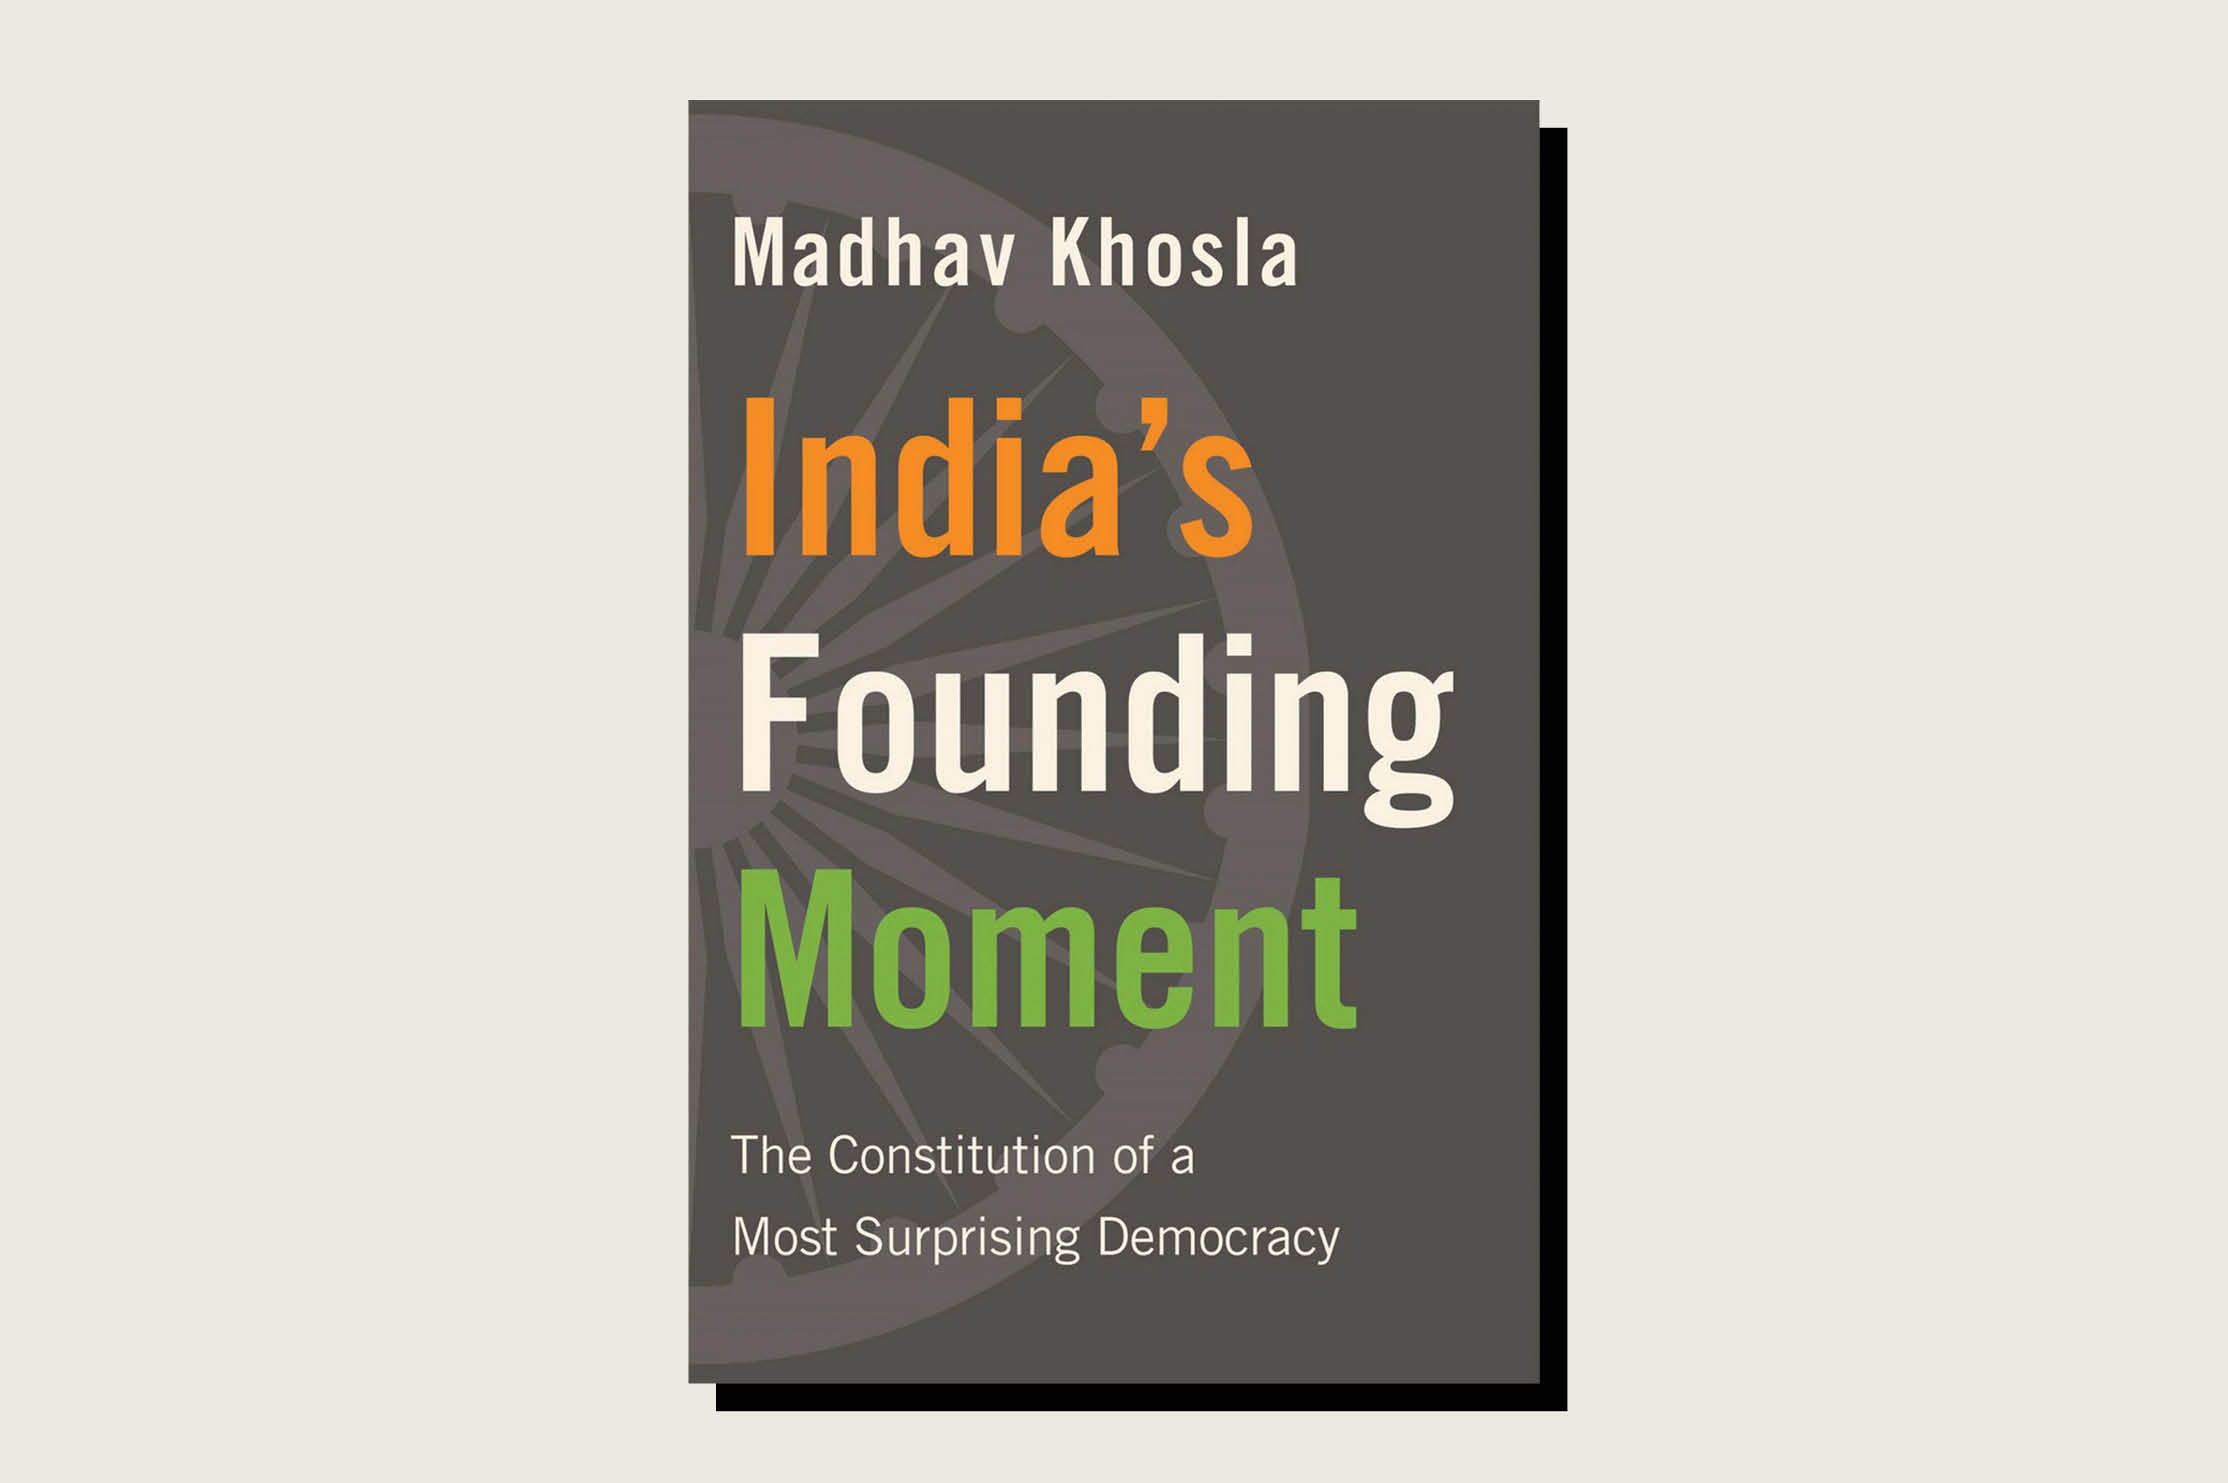 India's Founding Moment: The Constitution of a Most Surprising Democracy, Madhav Khosla, Harvard University Press, 240 pp., , February 2020